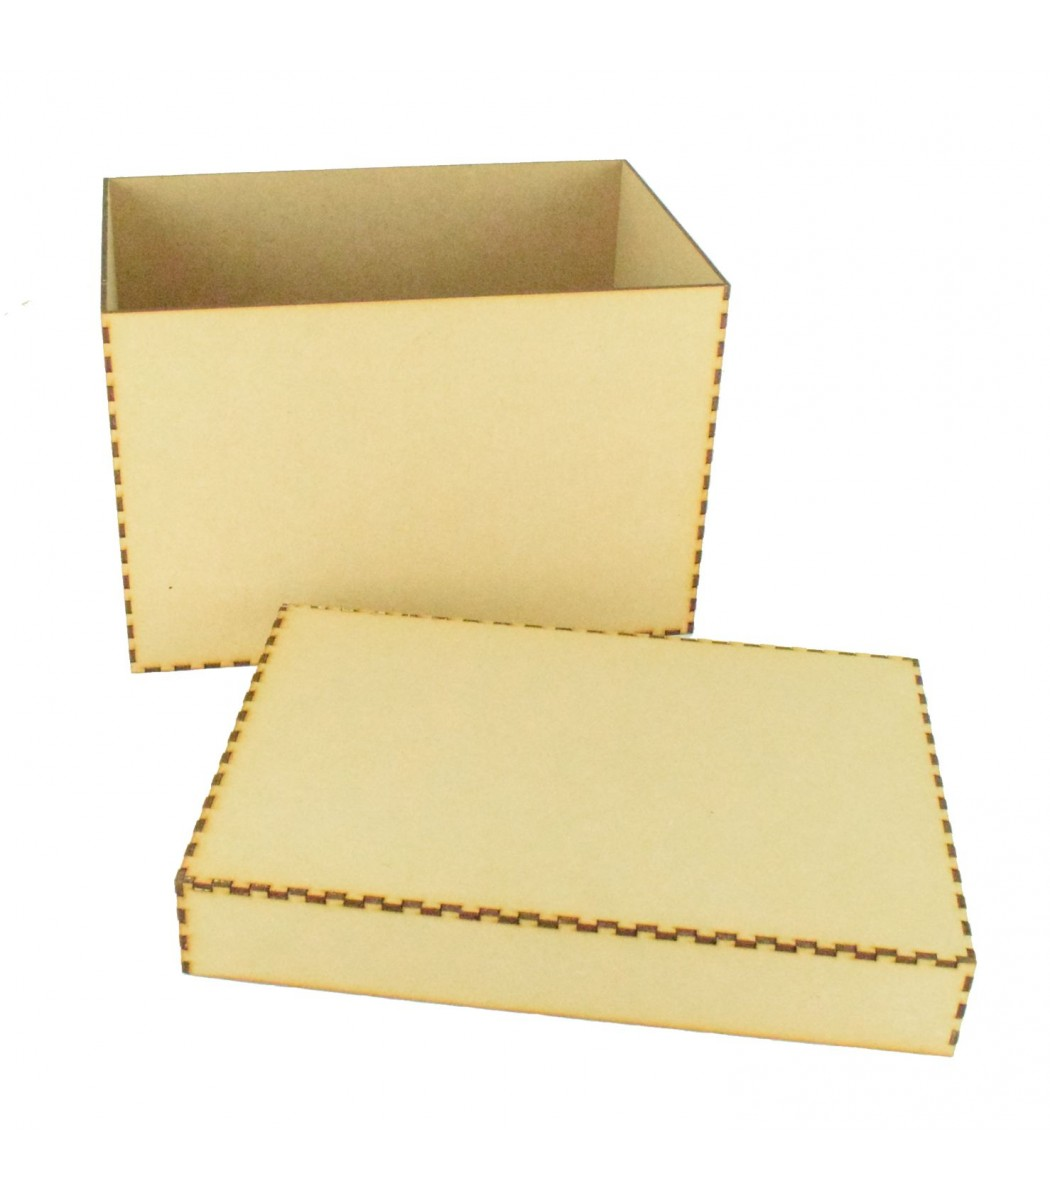 Bauble MDF Laser Cut Craft Blanks in Various Sizes Design 1